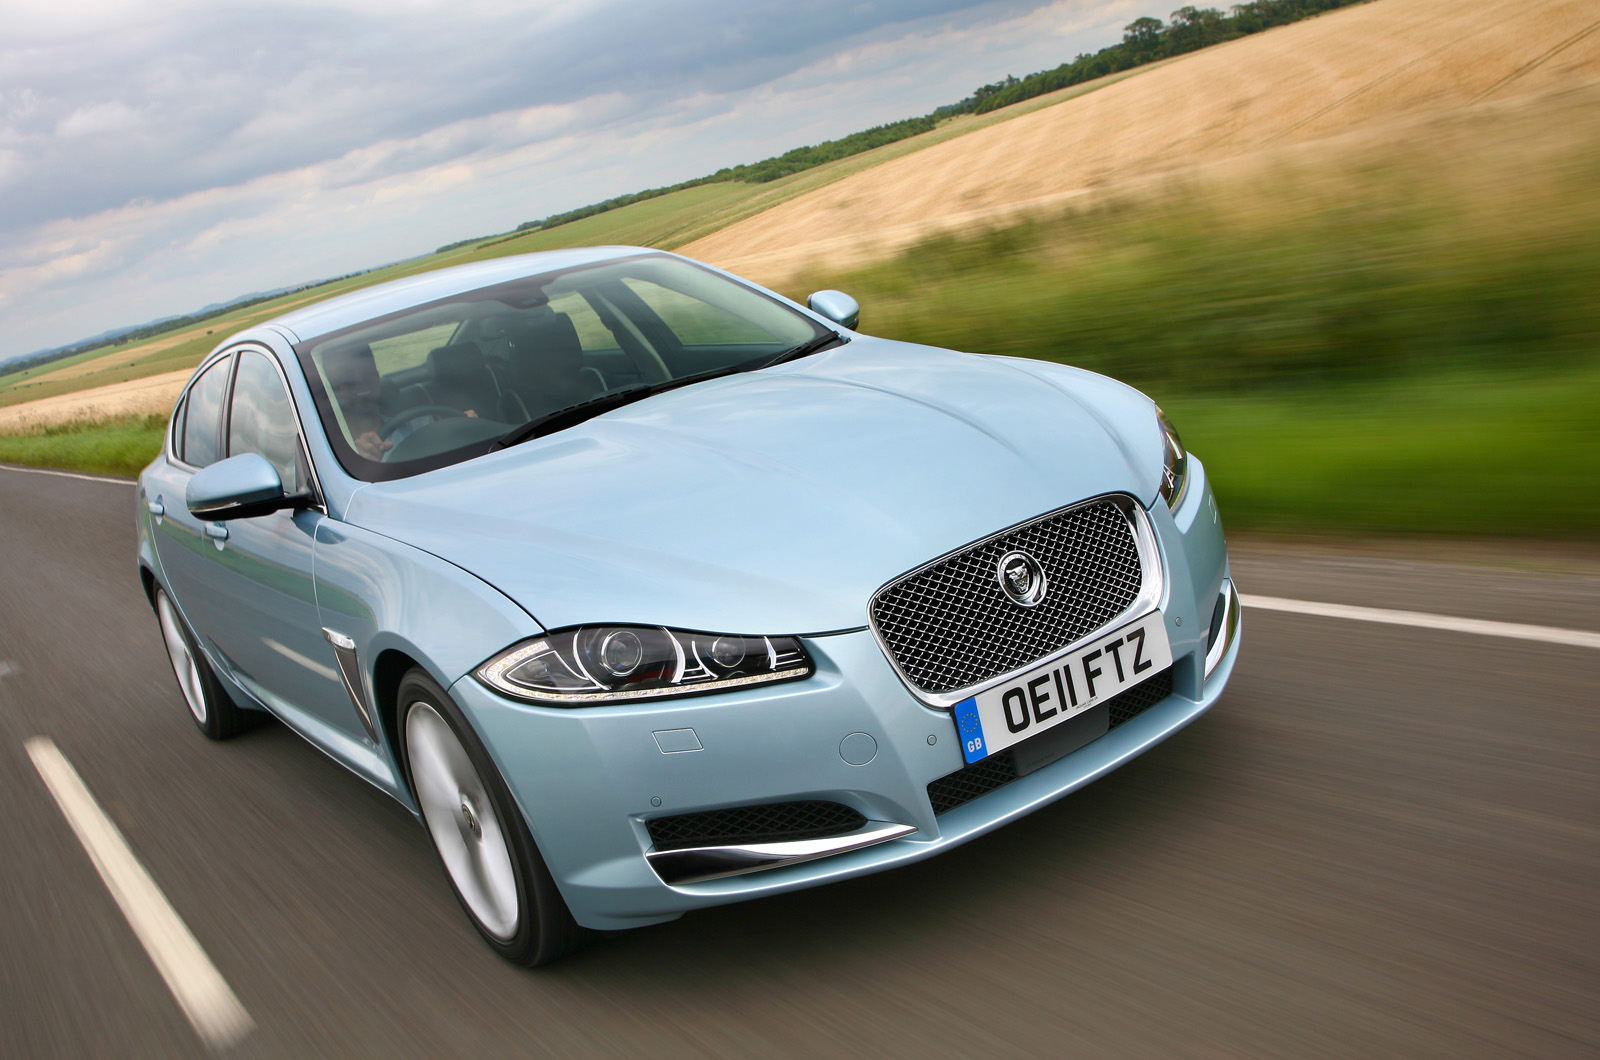 jaguar xf 3.0d luxury-pic. 1